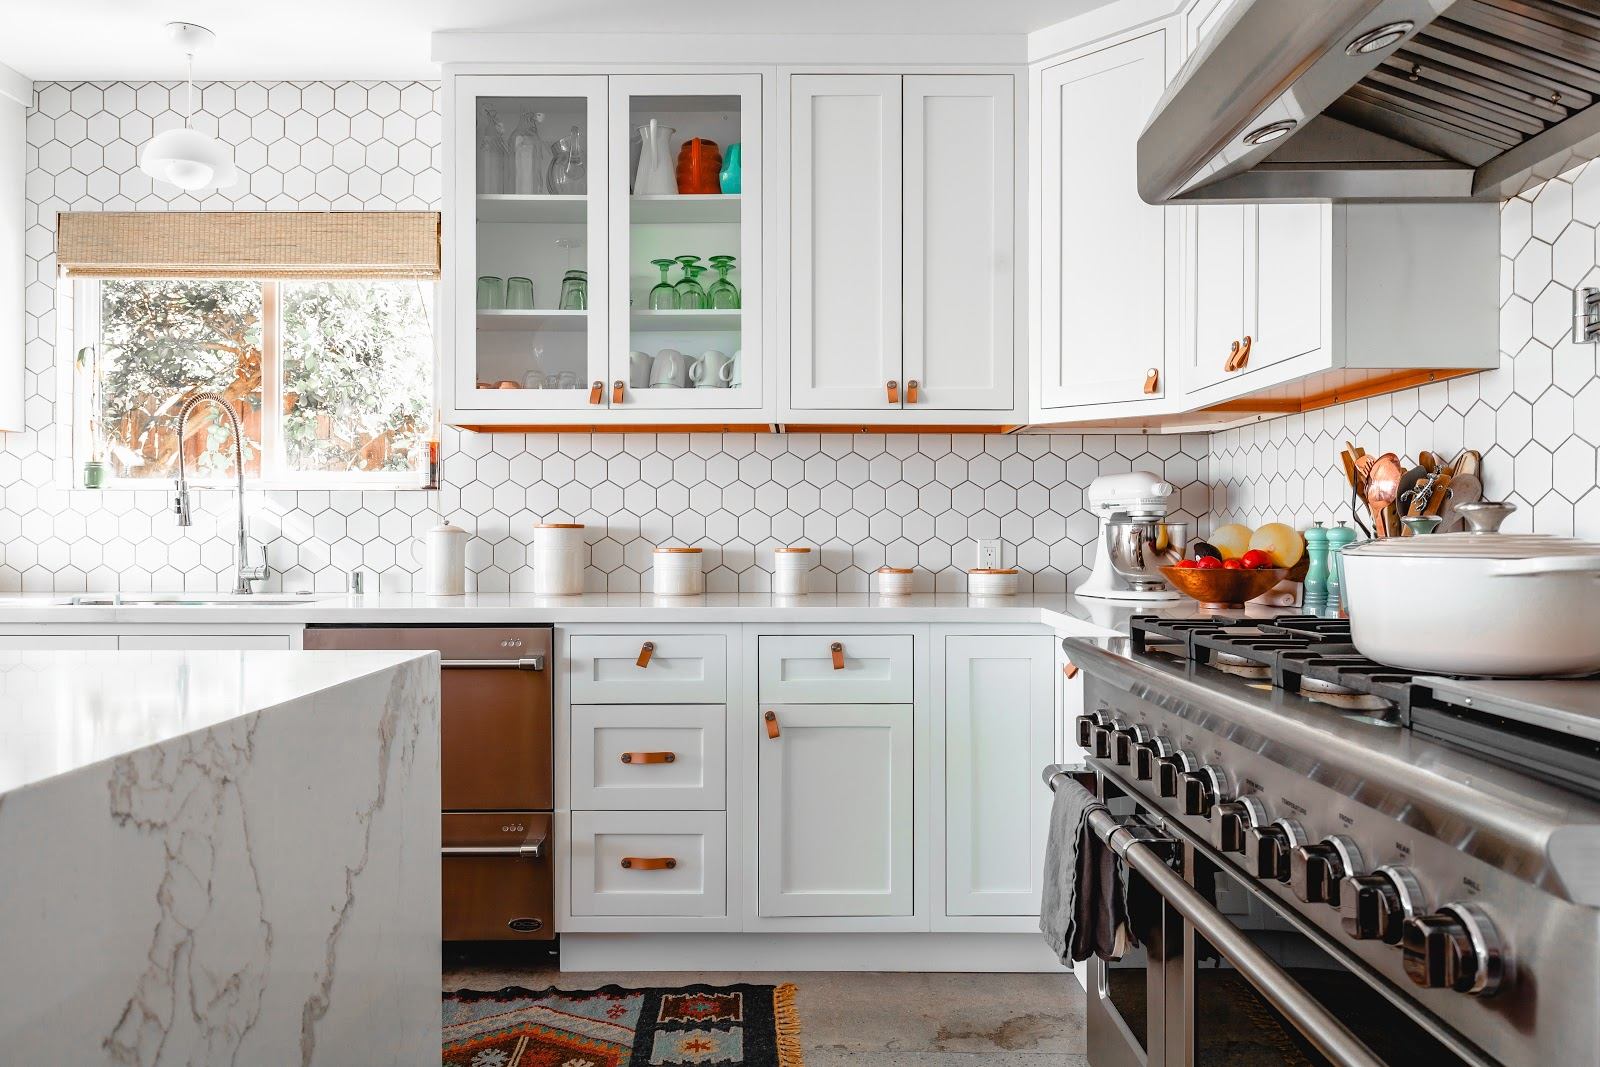 Kitchen Improvement Ideas: A to Z Guide to Kitchen Renovations -